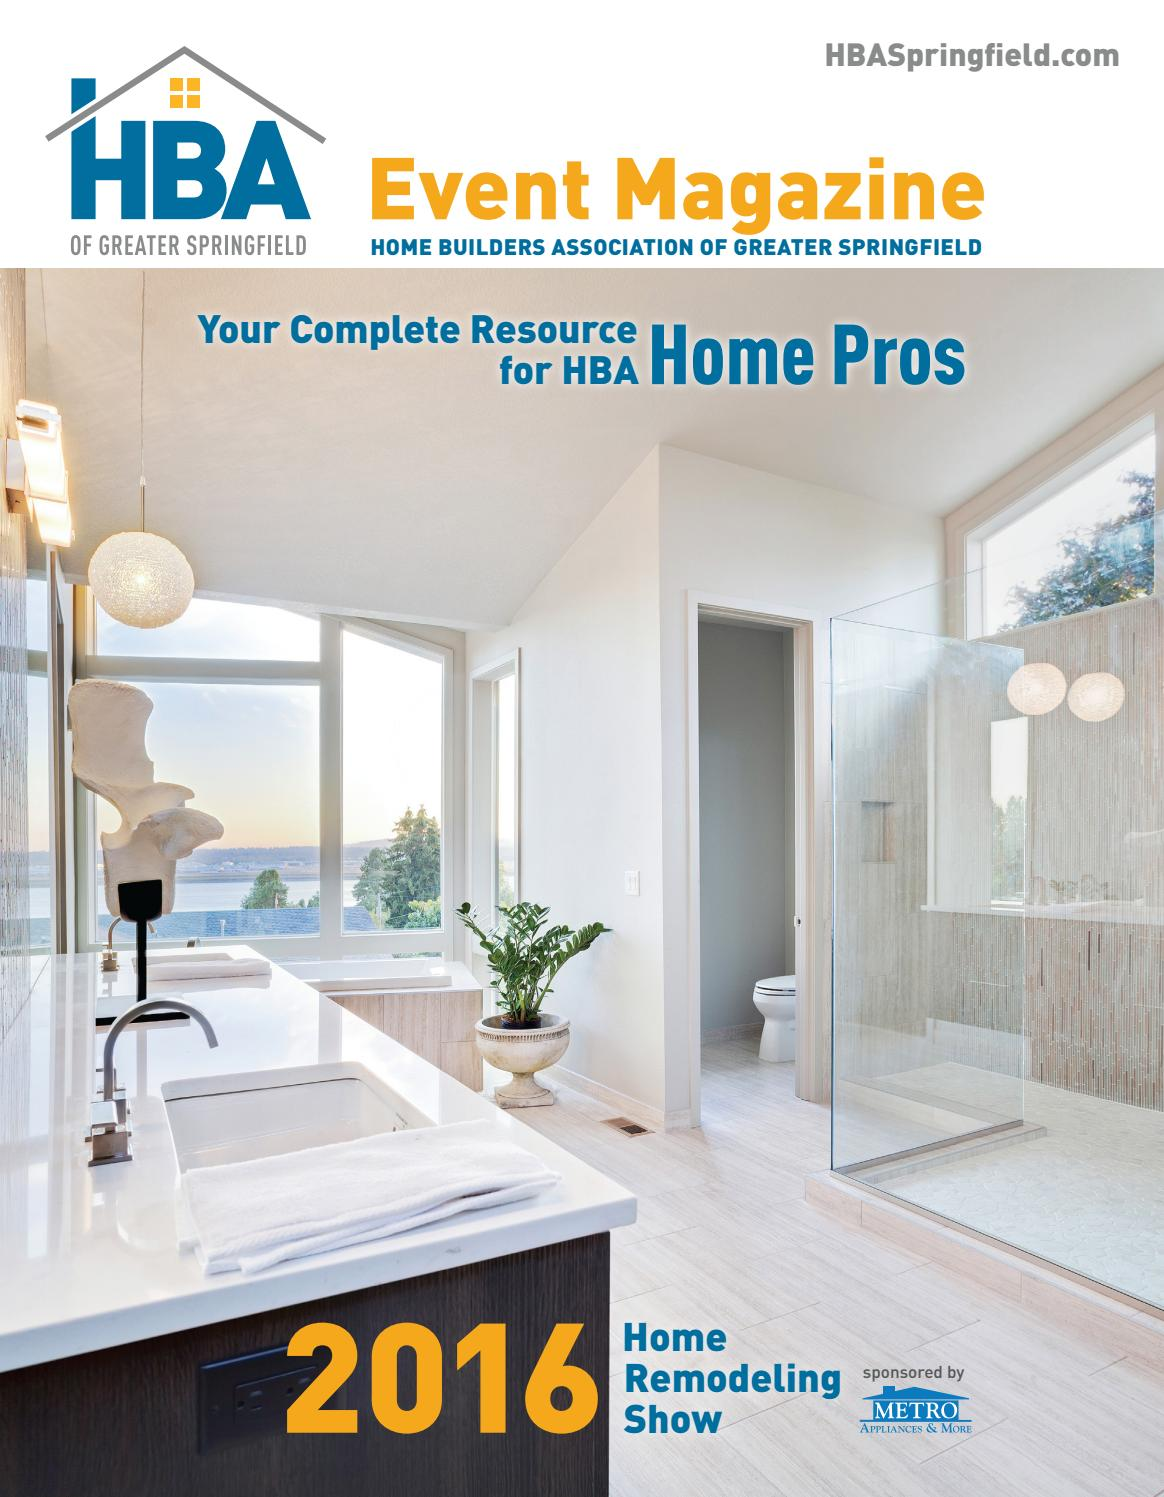 Hba Event Magazine Home Remodeling Show 2016 Edition By